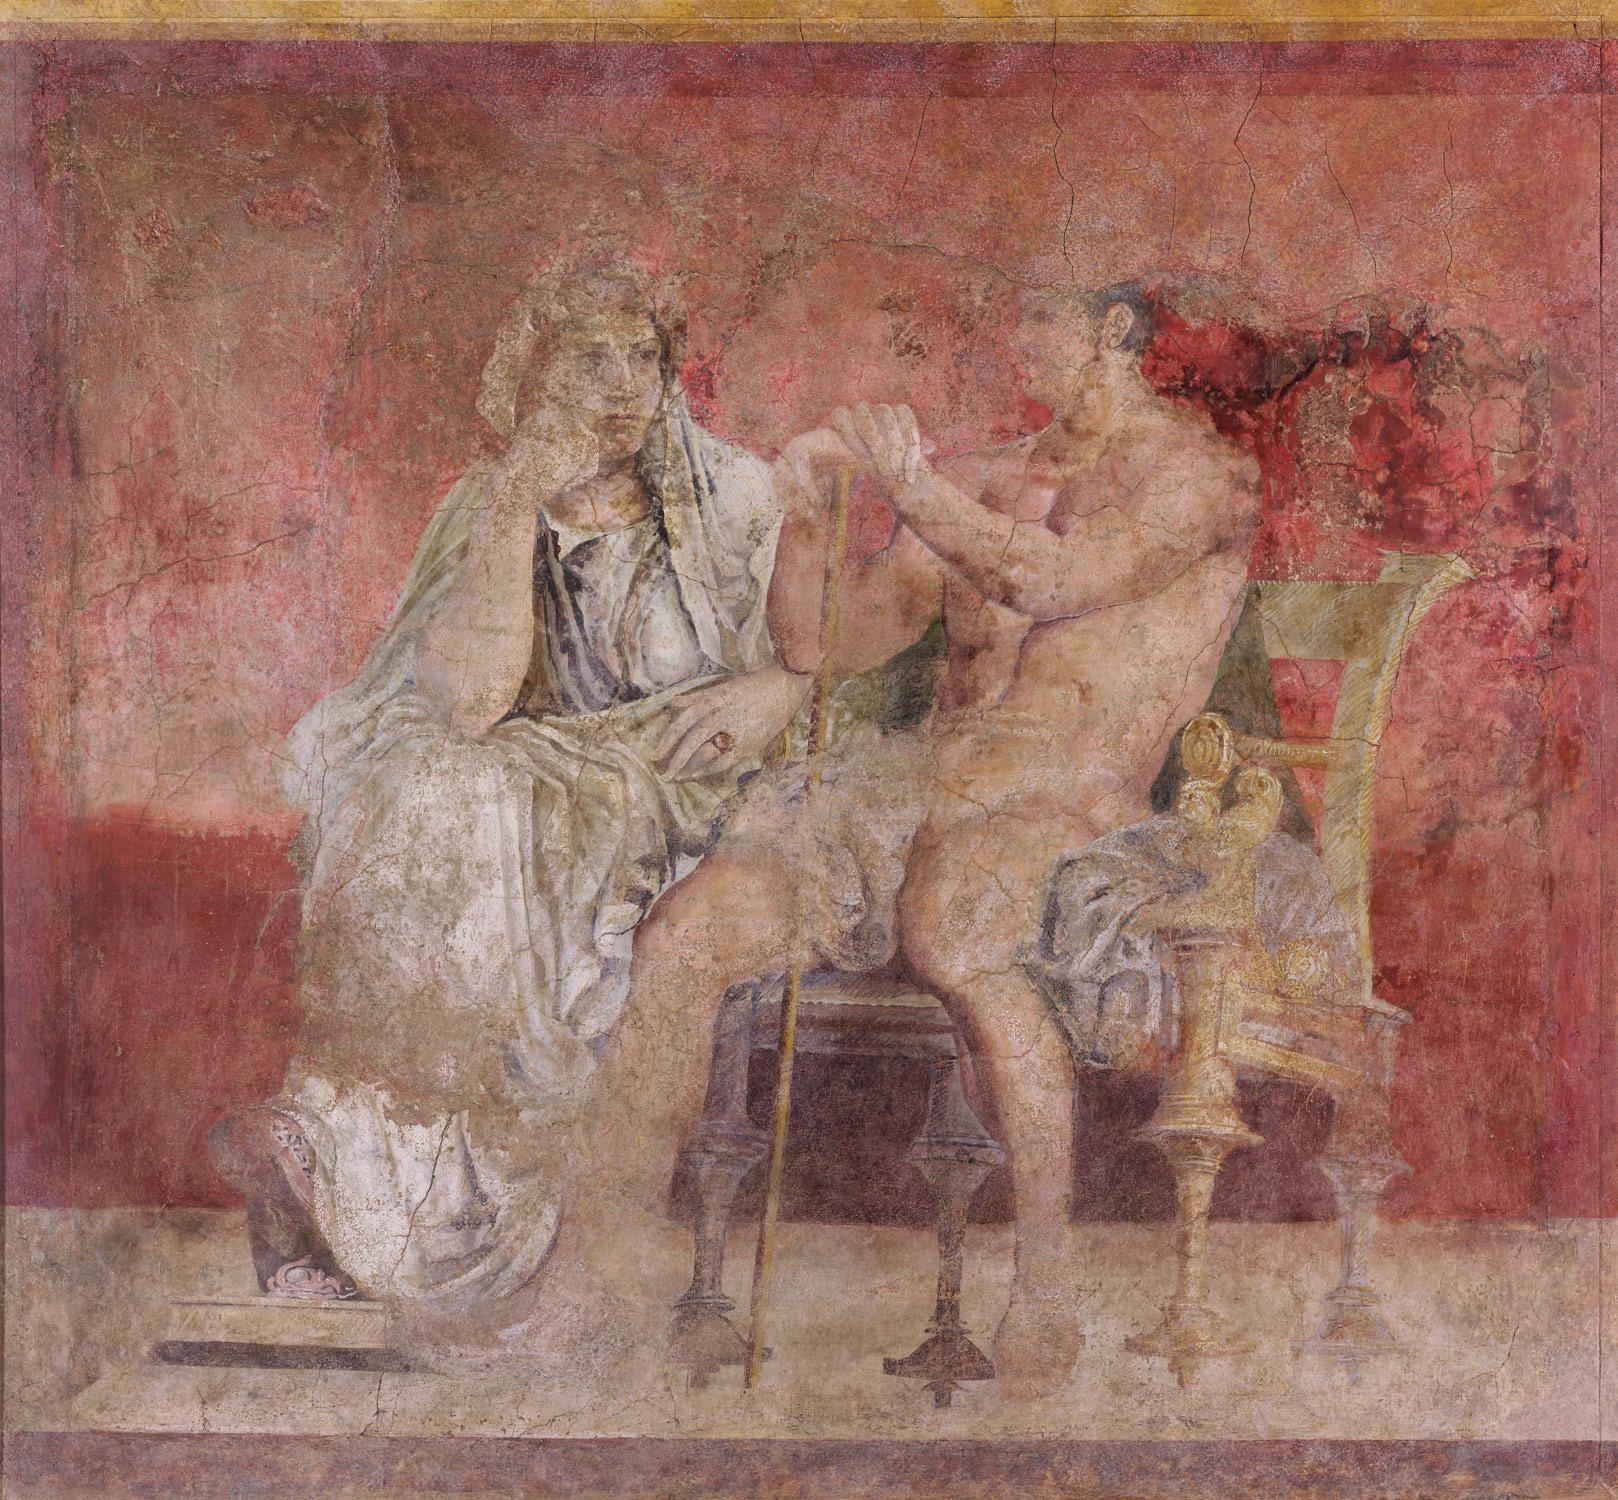 Wall Painting From Room H Of The Villa Of P (View 7 of 20)